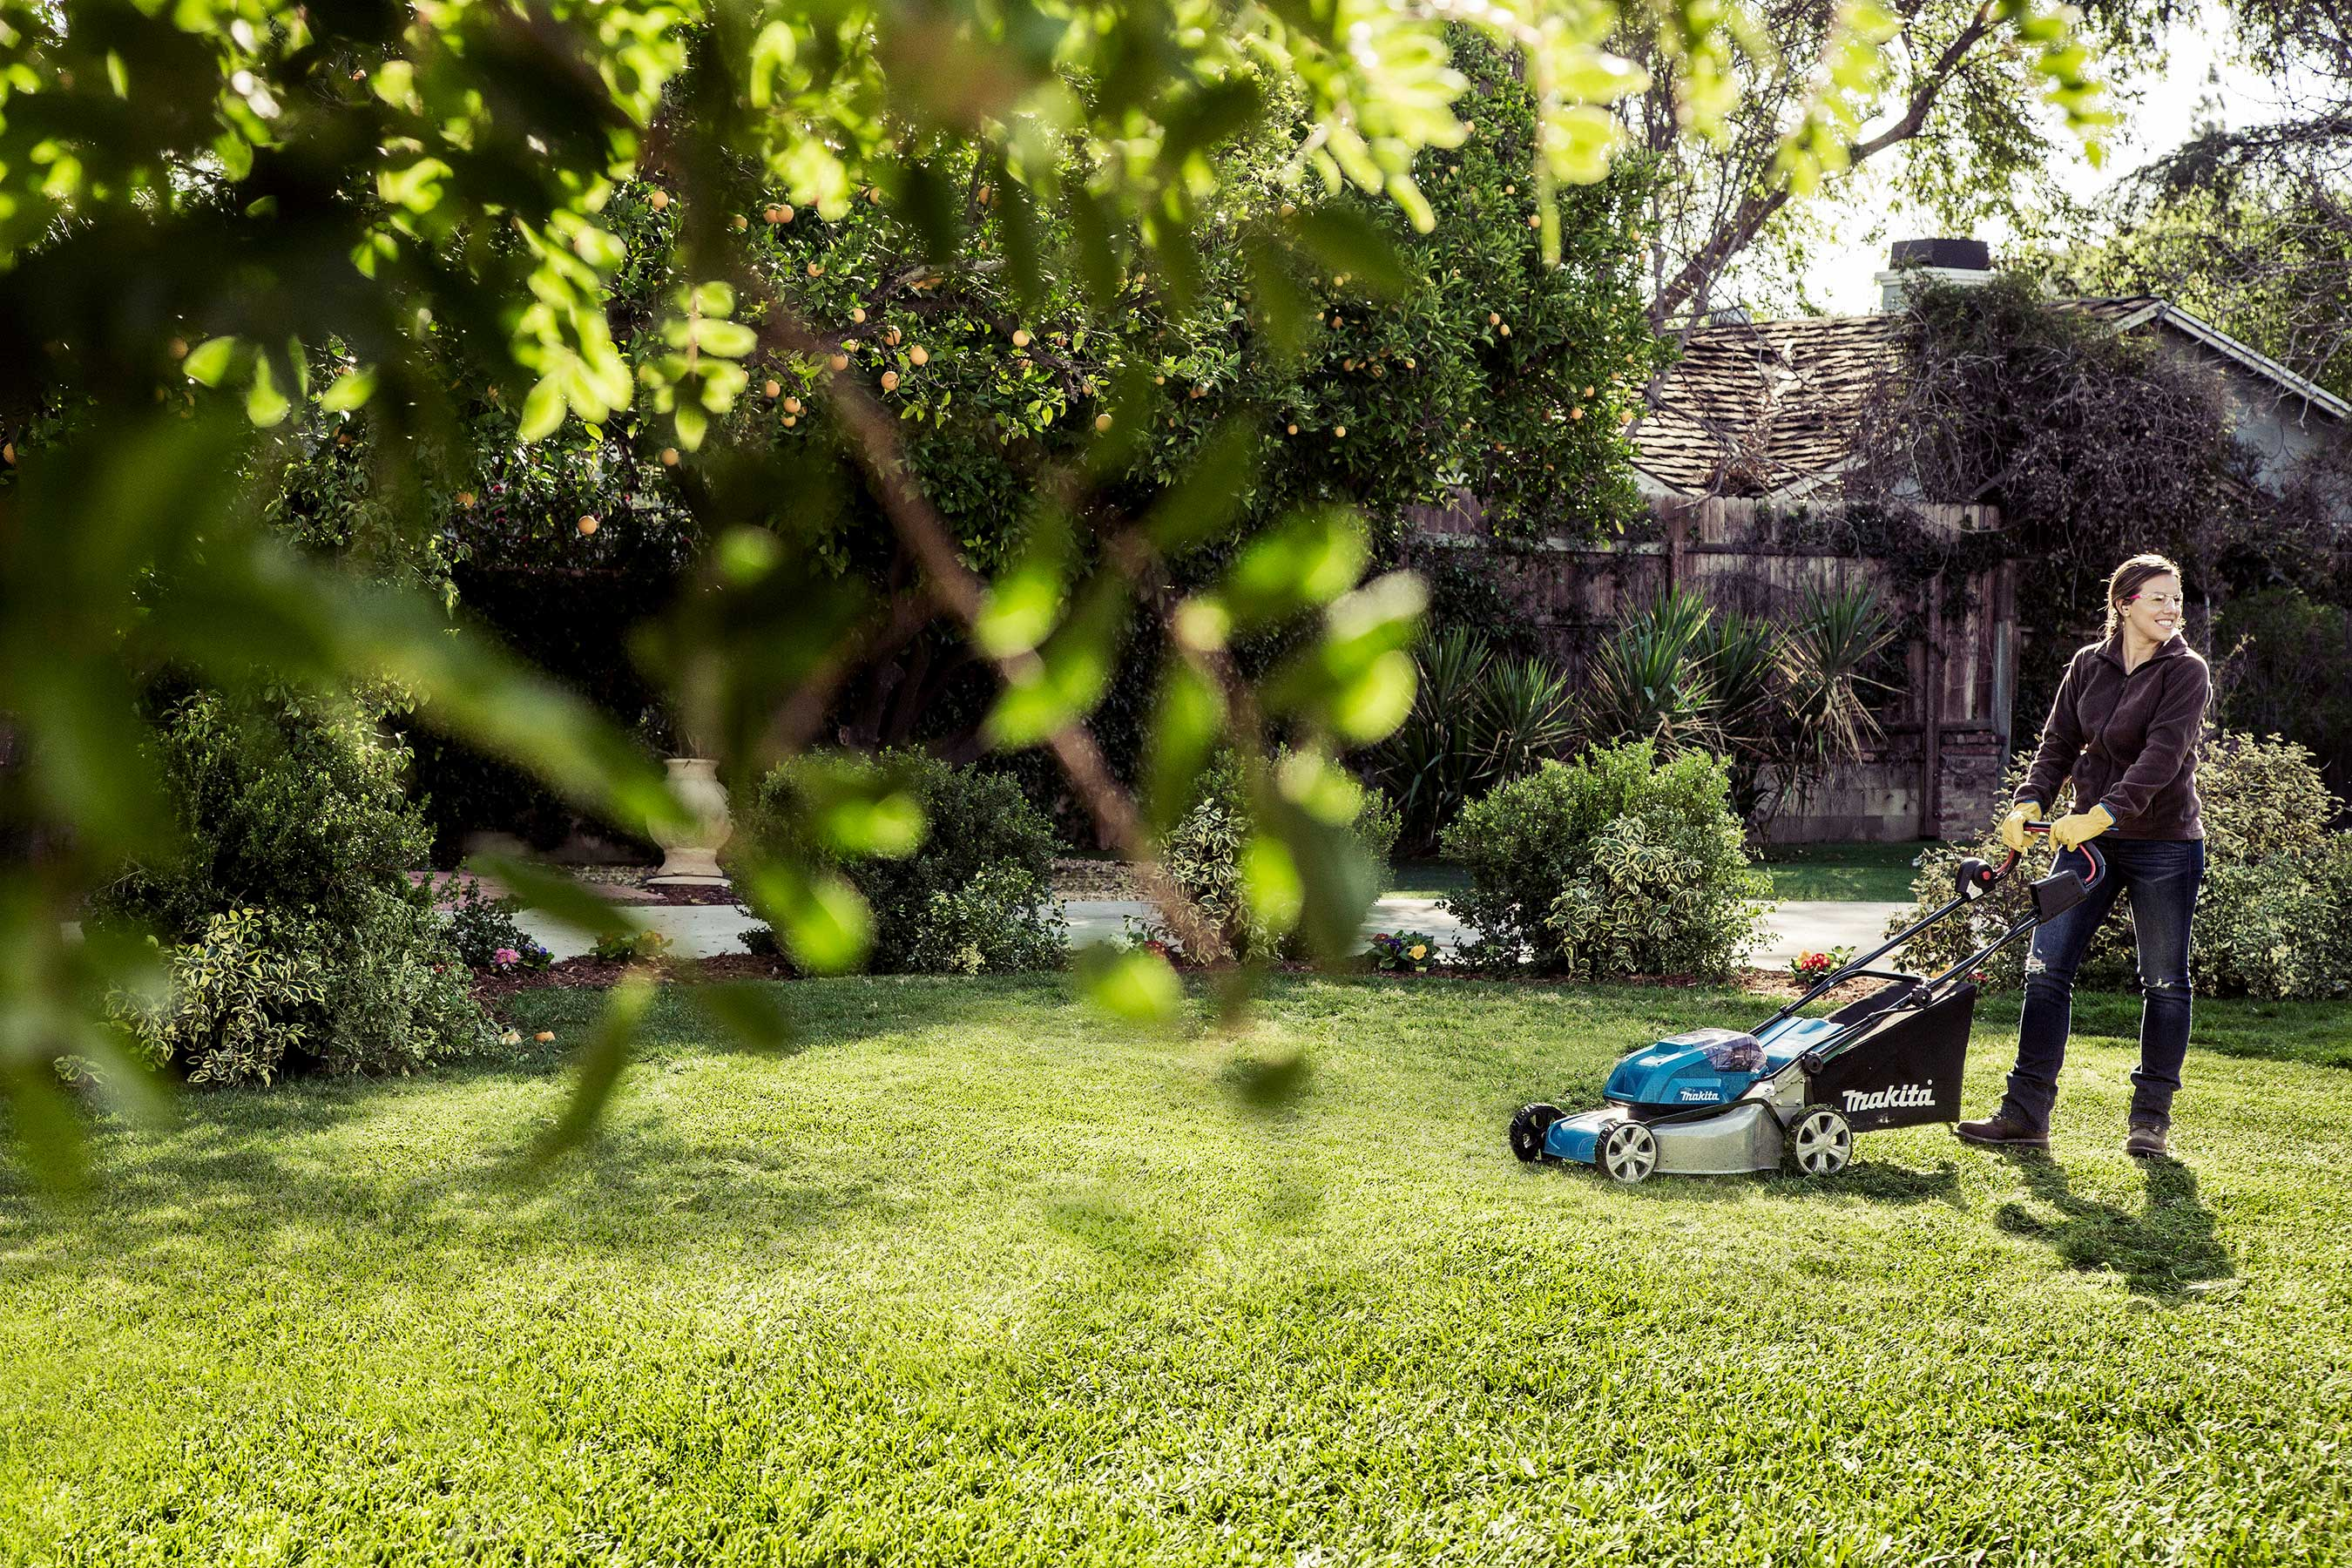 The Makita LXT Cordless Lawn Mower cuts up to 7,300 sq. ft. of grass (using two 5.0Ah LXT Batteries)